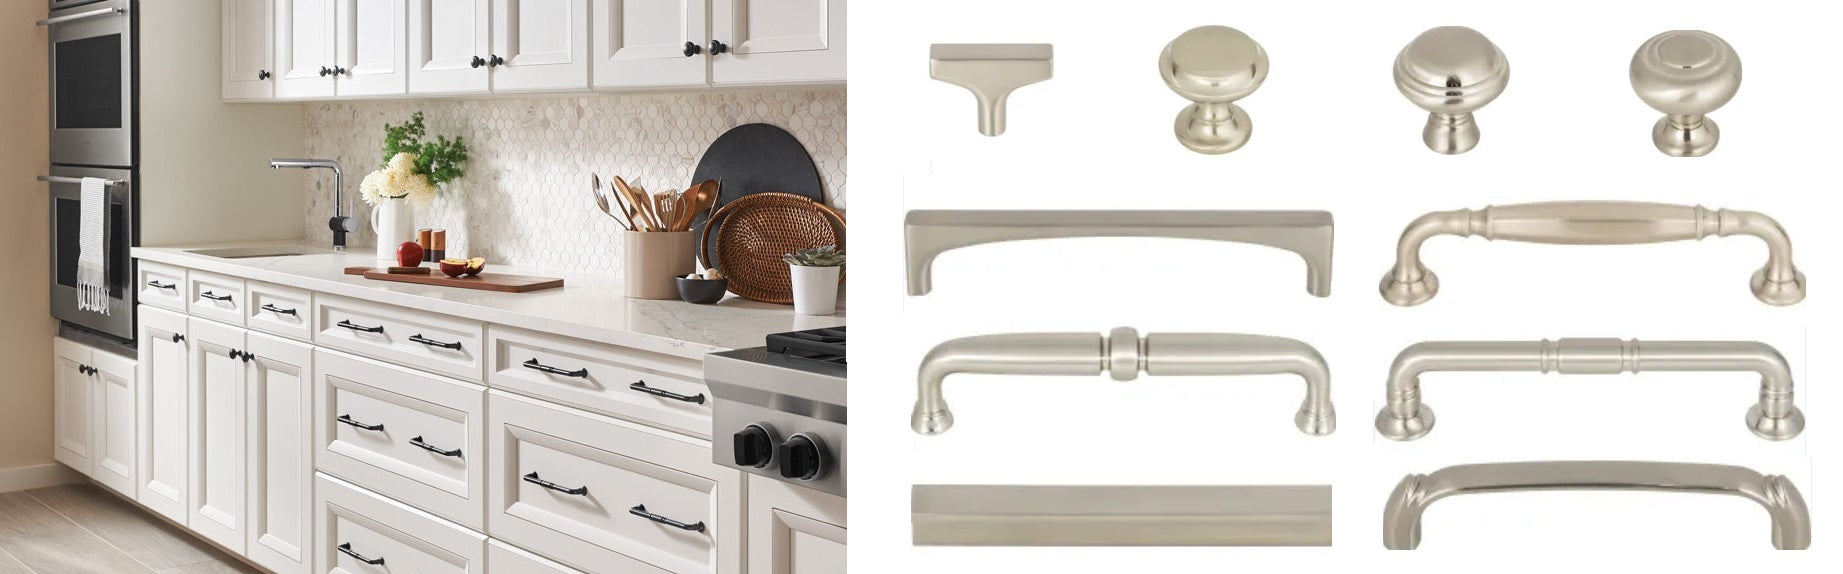 Grace collection by Top Knobs Hardware